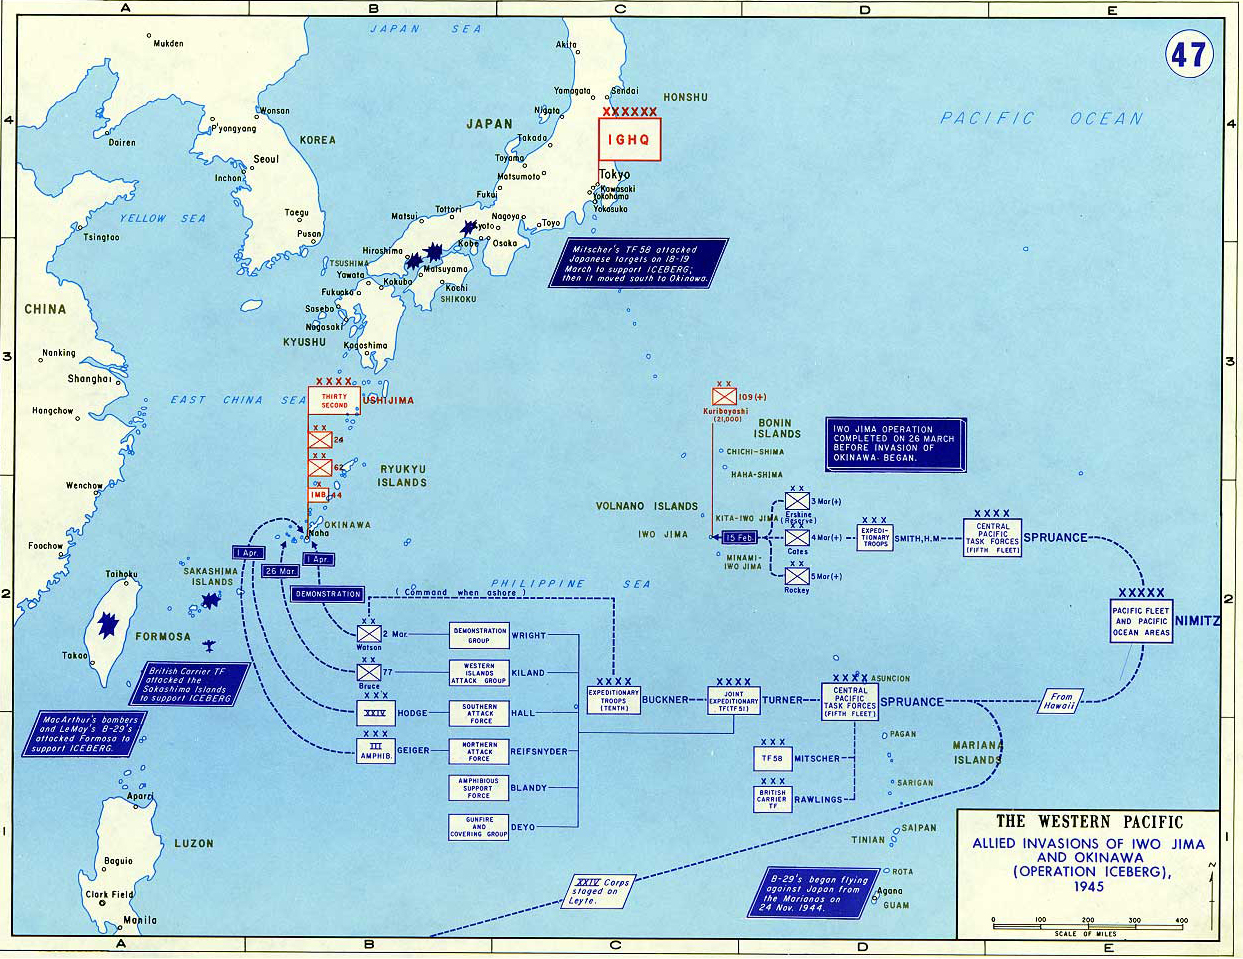 Map of wwii invasion of iwo jima and okinawa 1945 map of world war ii the western pacific 1945 allied invasions of iwo jima gumiabroncs Image collections